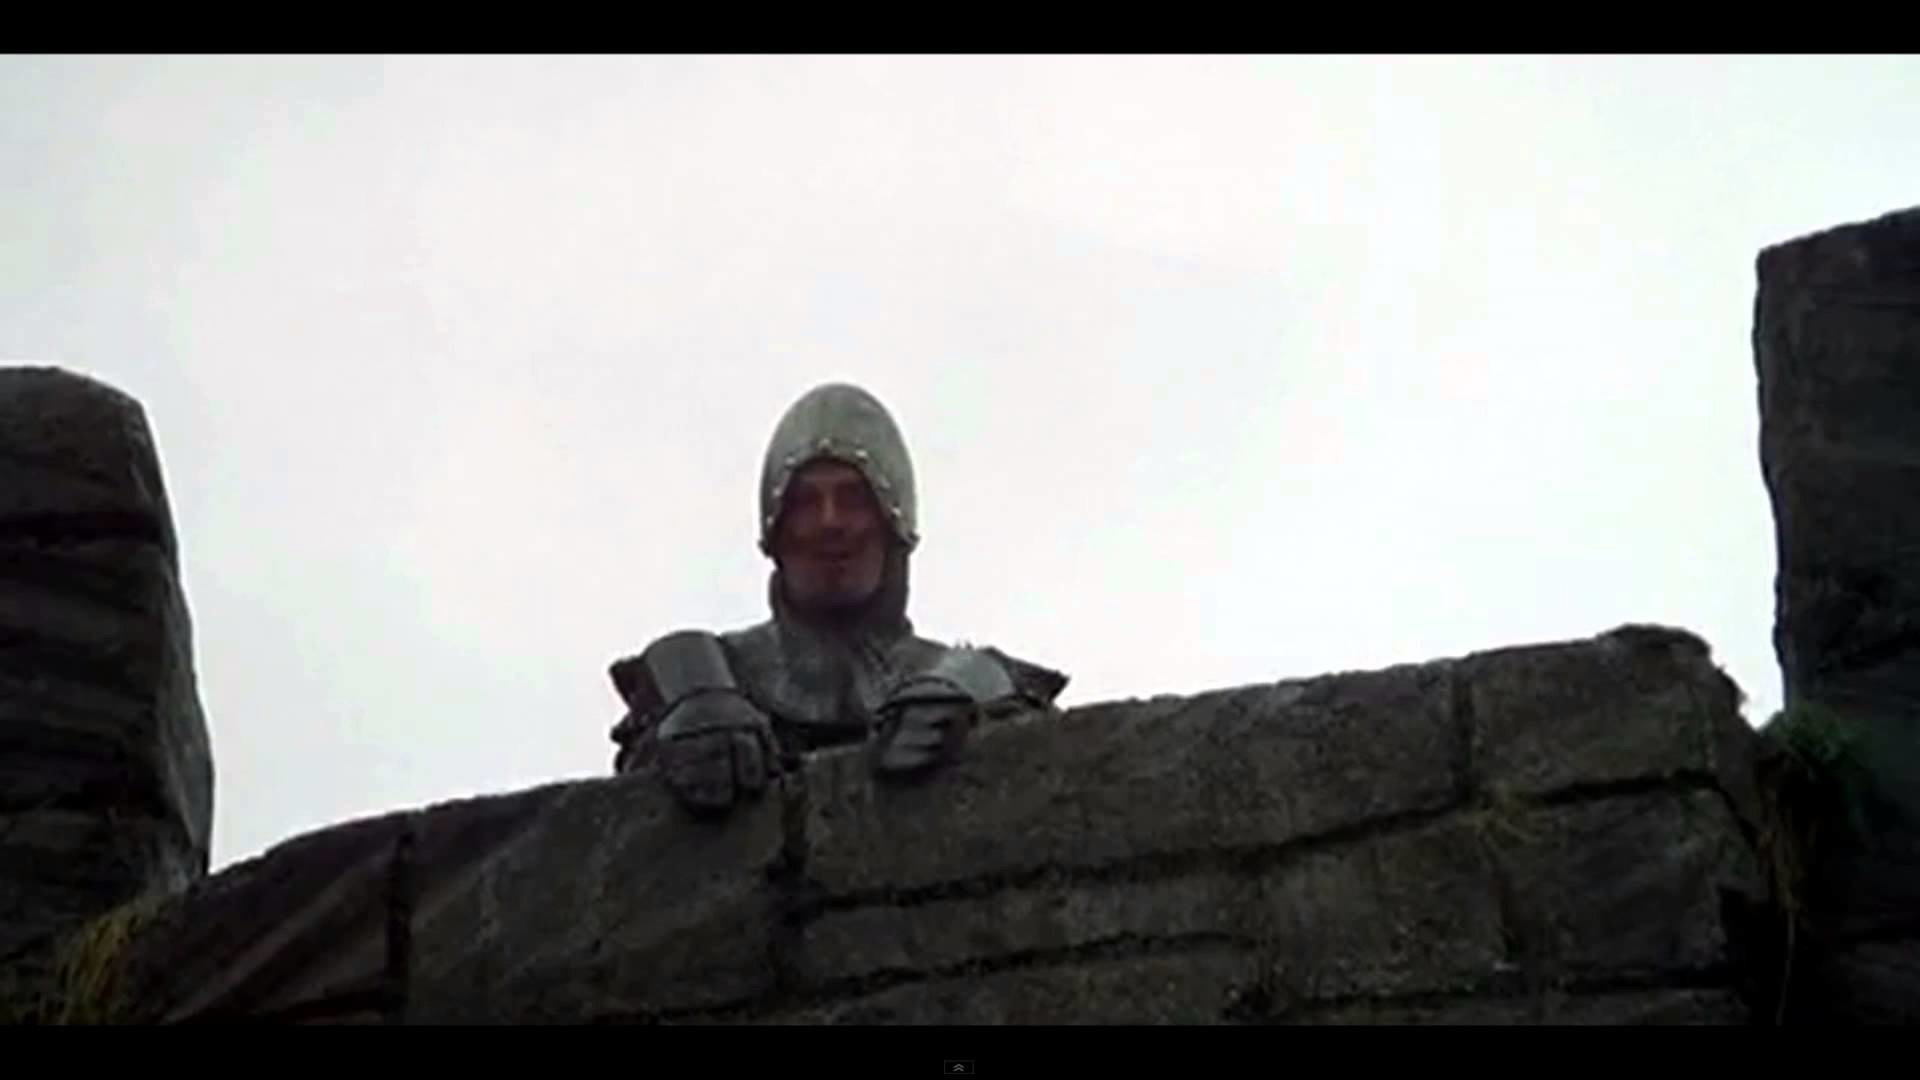 Frenchies Taunting Eanglish – Monty Python – The Holy Grail 1080p HD wide  screen 16:9